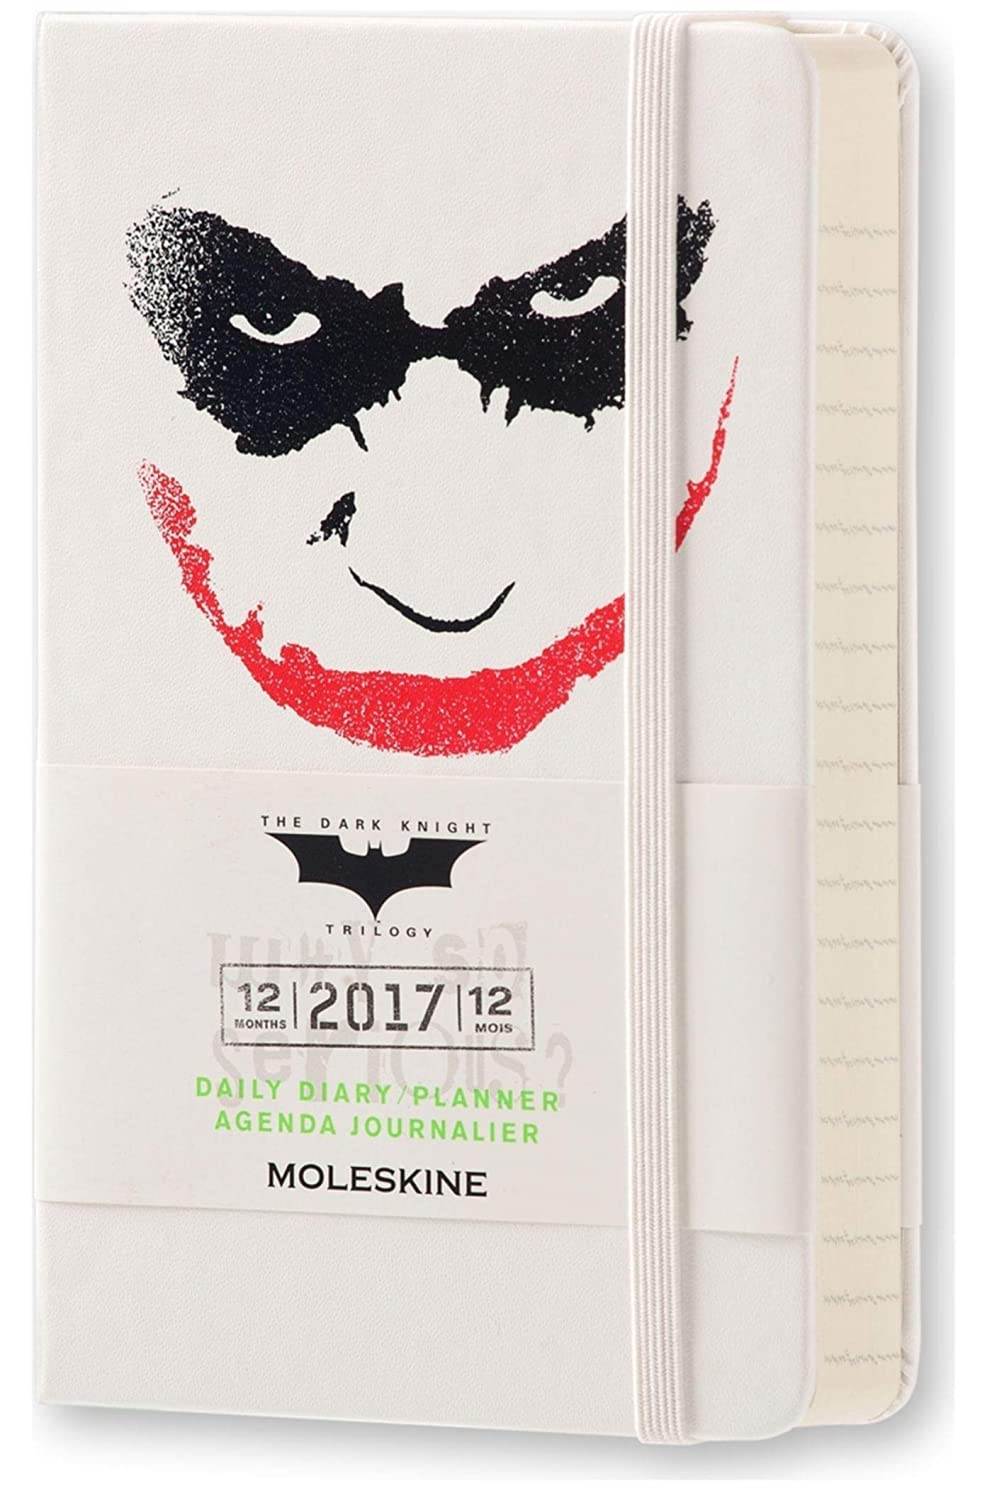 Moleskine 2017 Batman Limited Edition Daily Planner, 12M, Pocket, White, Hard Cover (3.5 x 5.5)